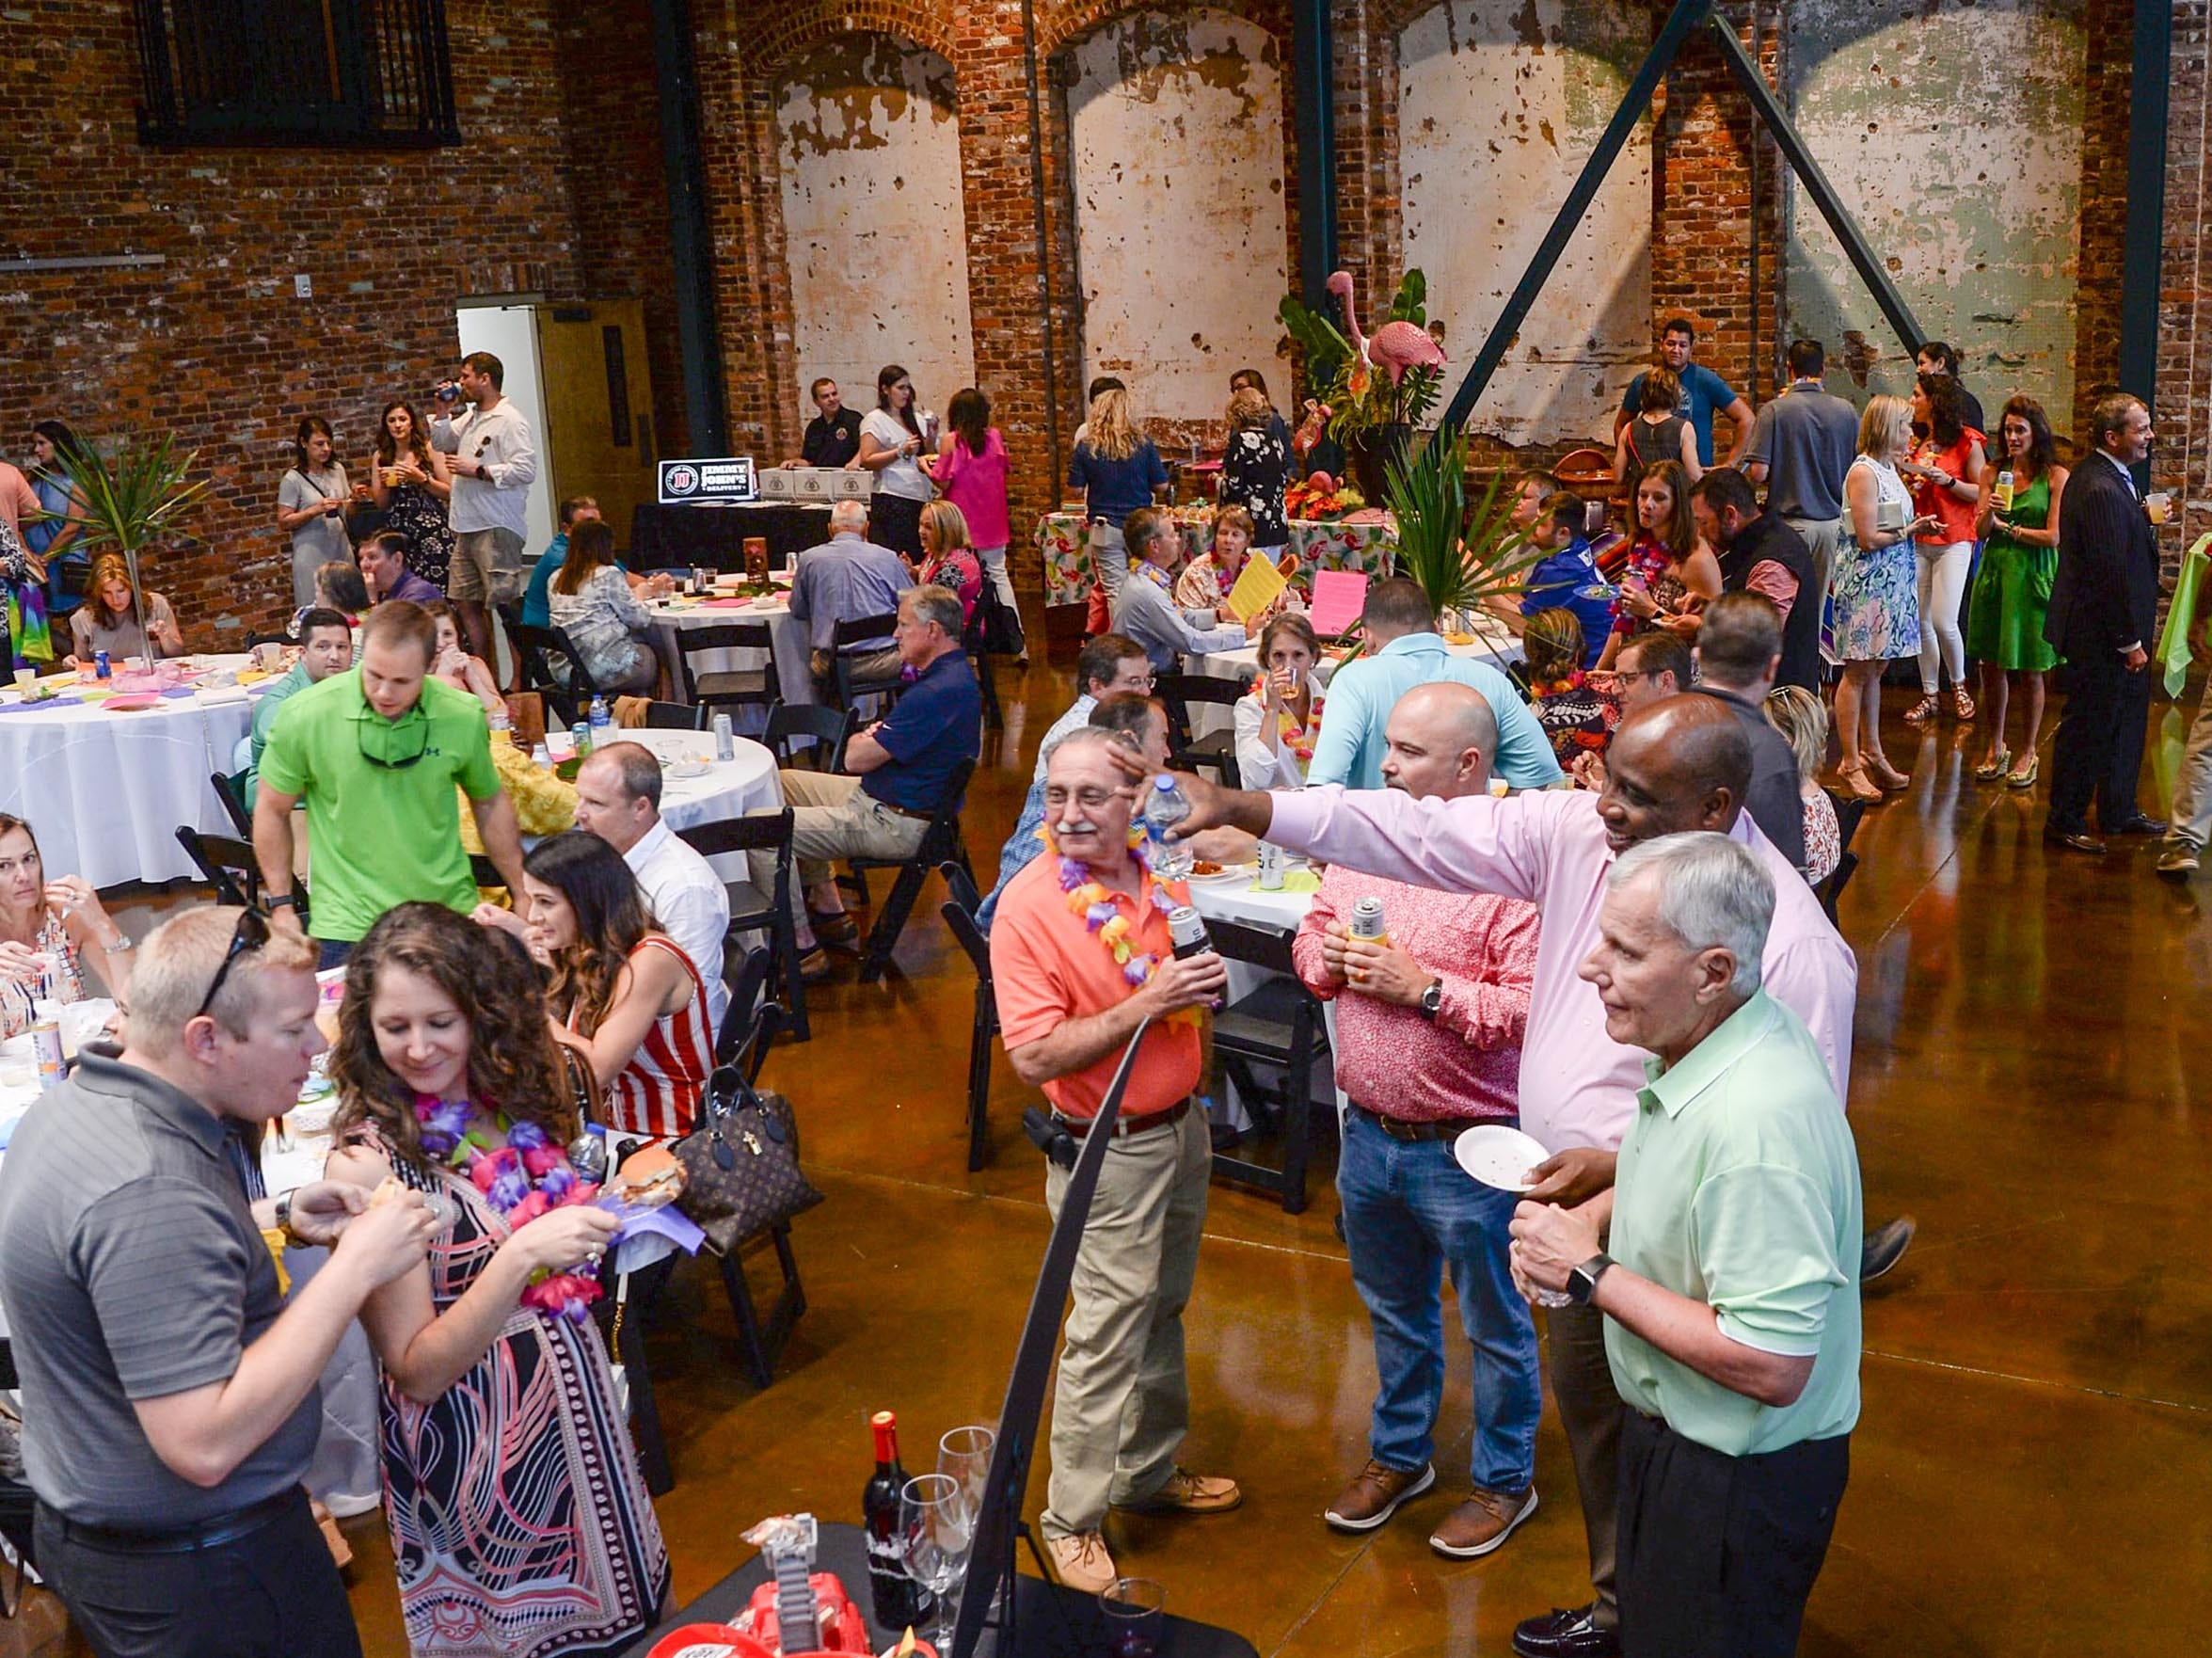 A large crowd mingles and eats food during the Anderson Area YMCA Ralph Hayes Toyota Taste of Anderson at The Bleckley Station Tuesday. Proceeds from the Aloha theme party benefit programs and services of the Anderson Area YMCA.